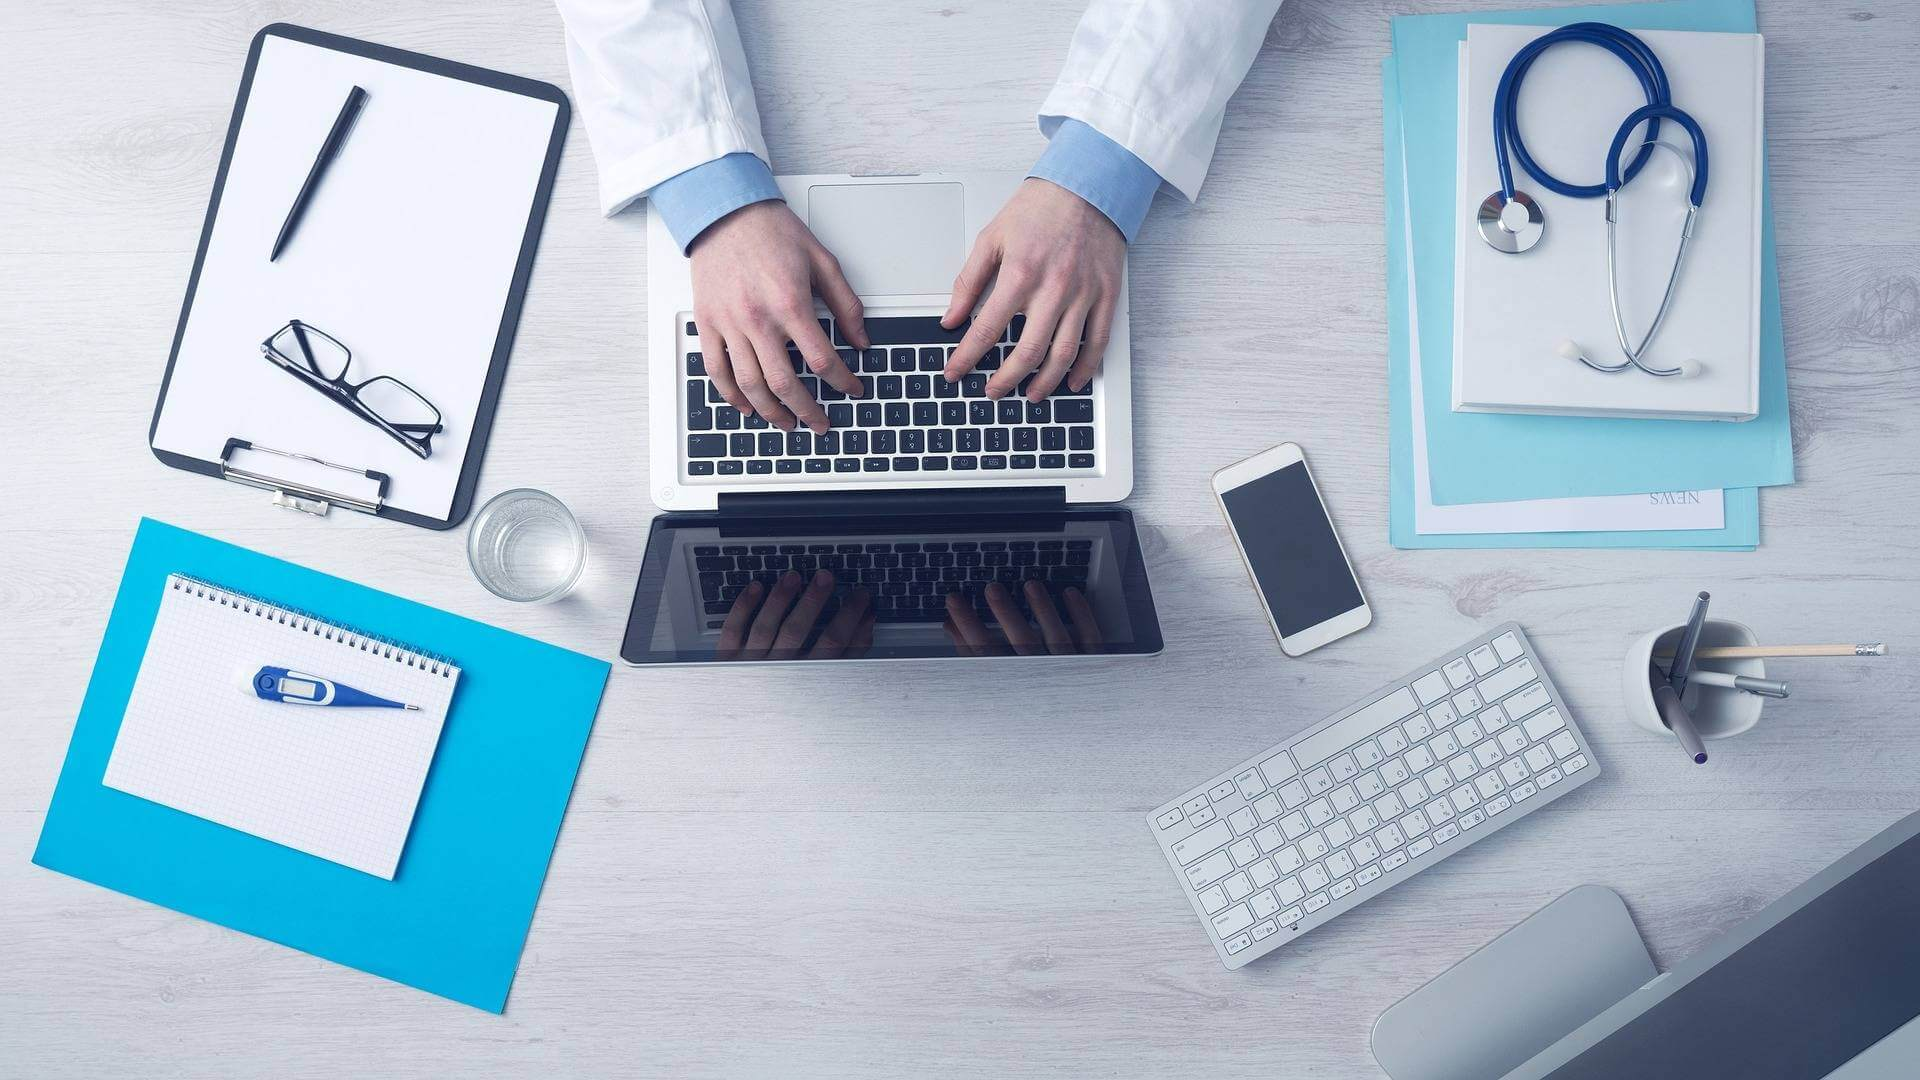 Would you or do you use an online doctor? How does using an online doctor work? What services do online Doctors offer? Click here to find out all the answers